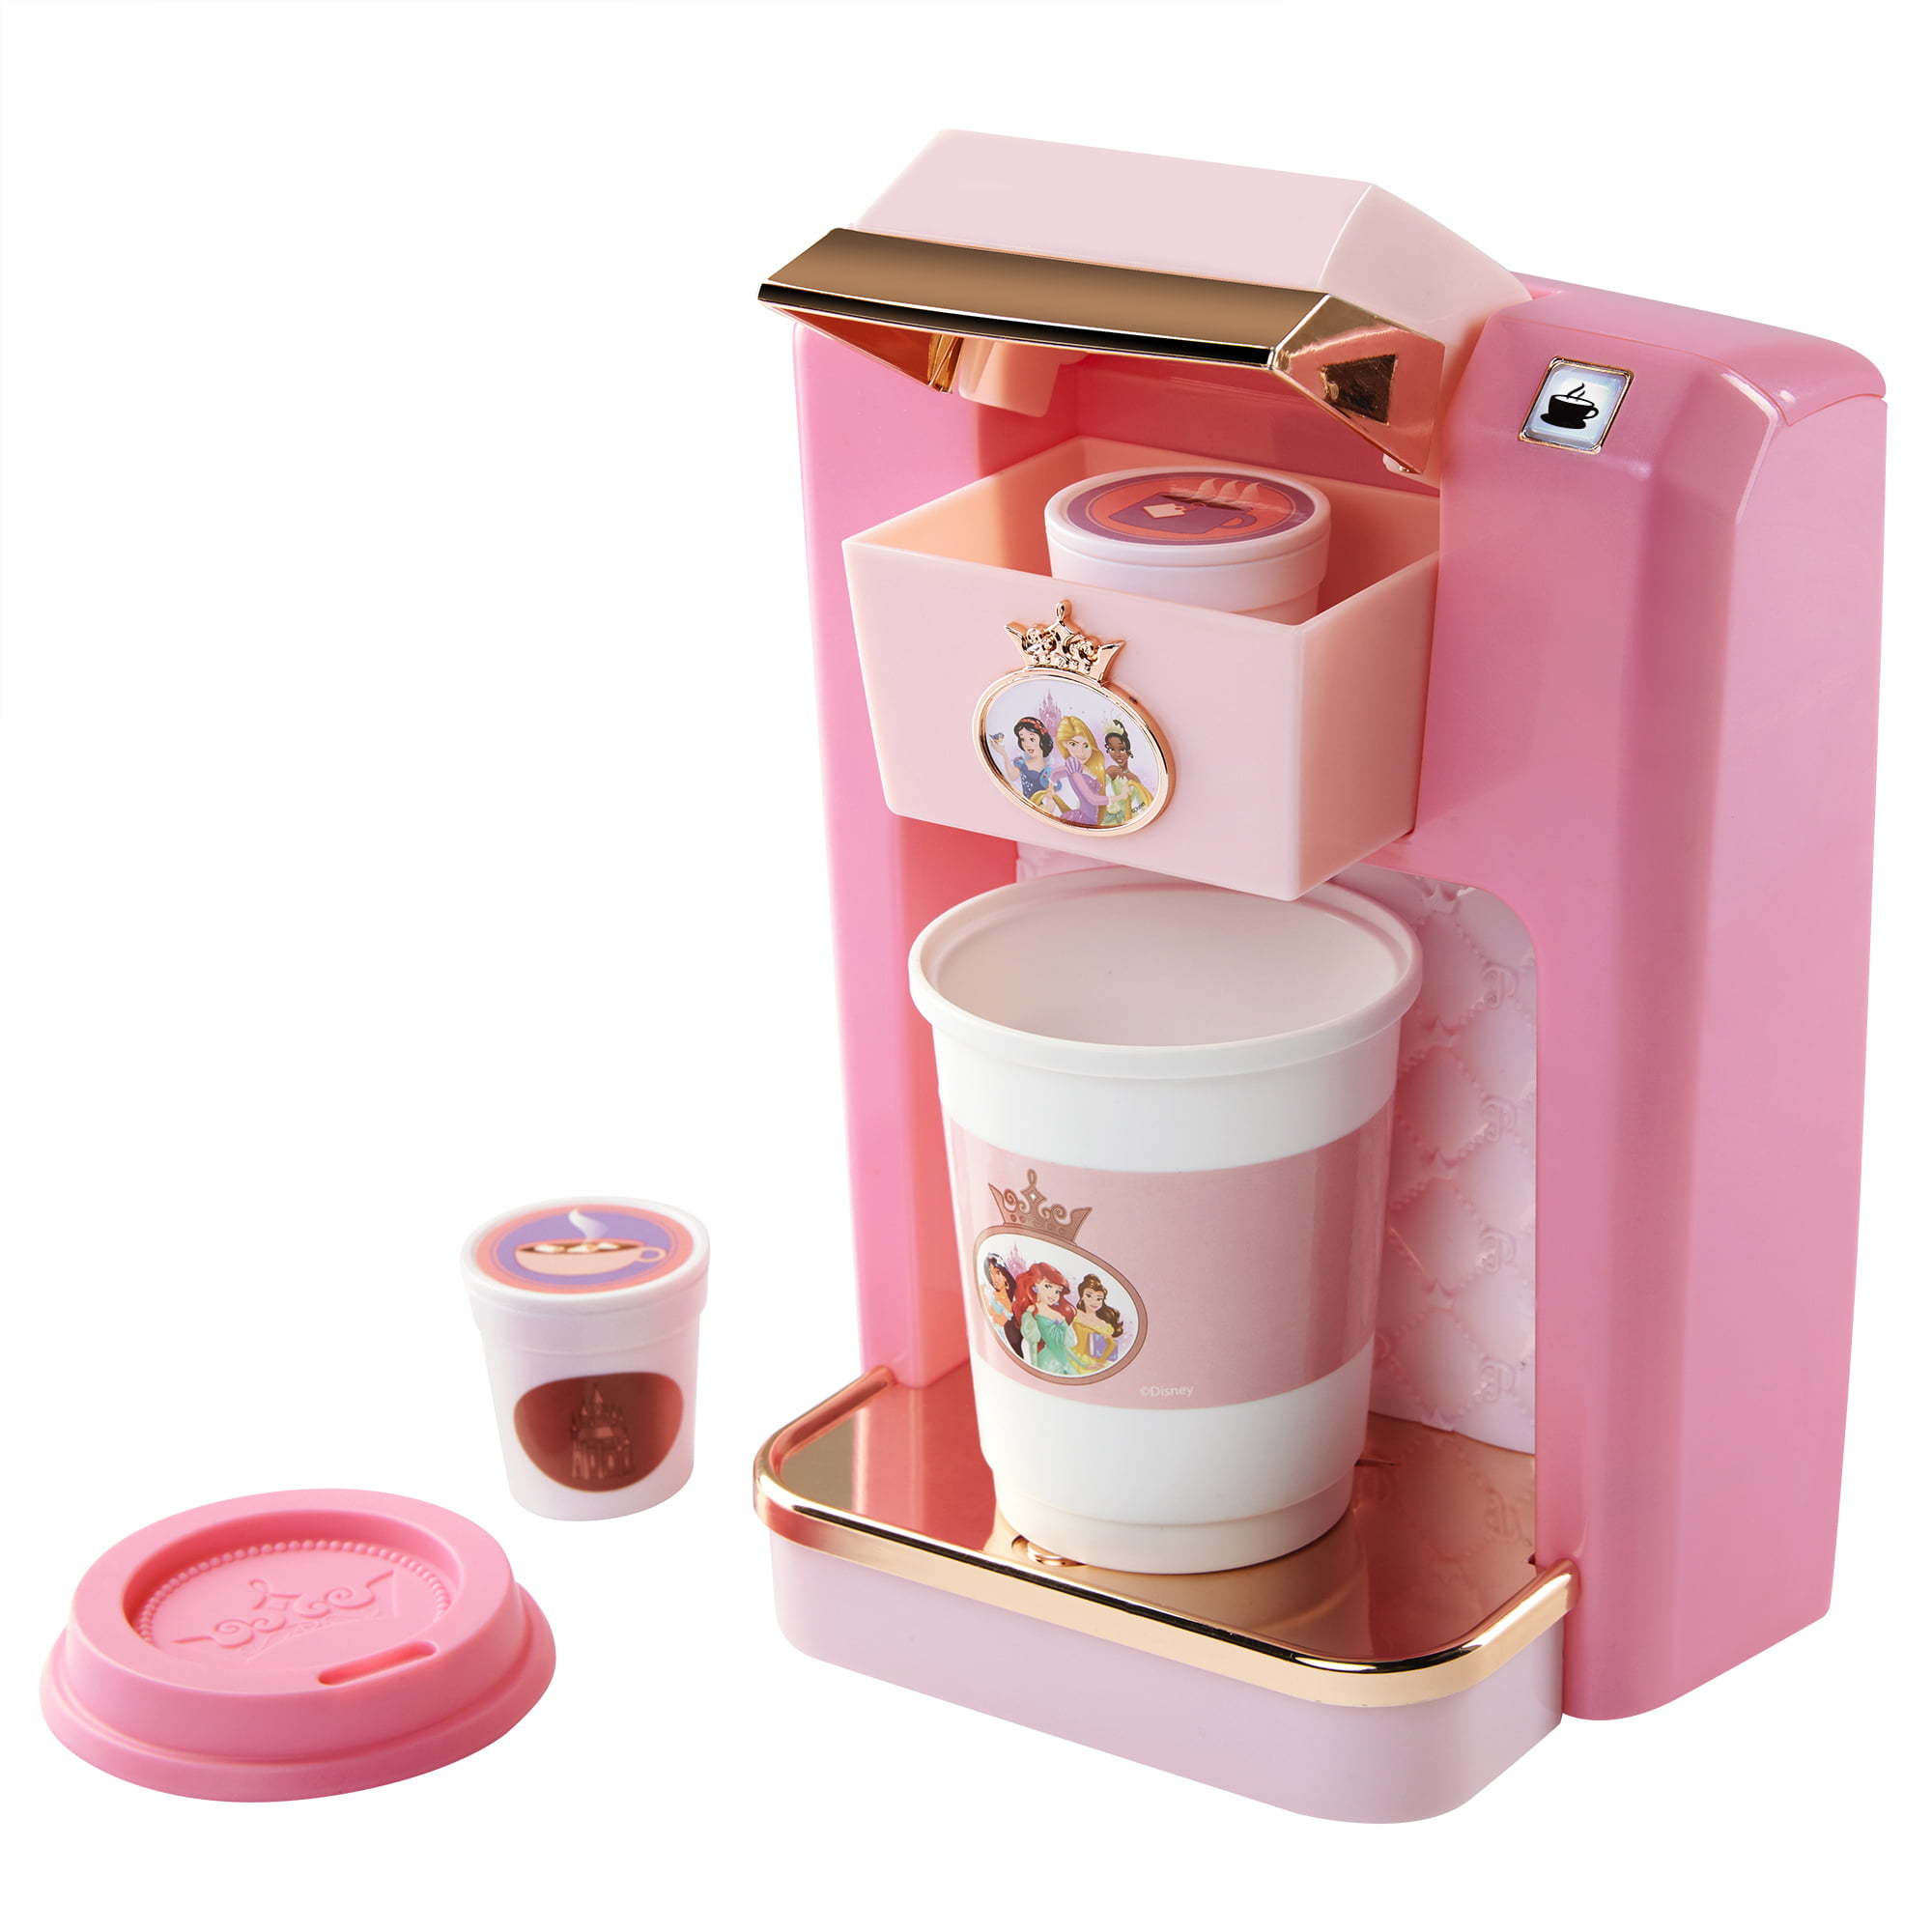 Disney Princess Style Collection Coffee Maker Playset